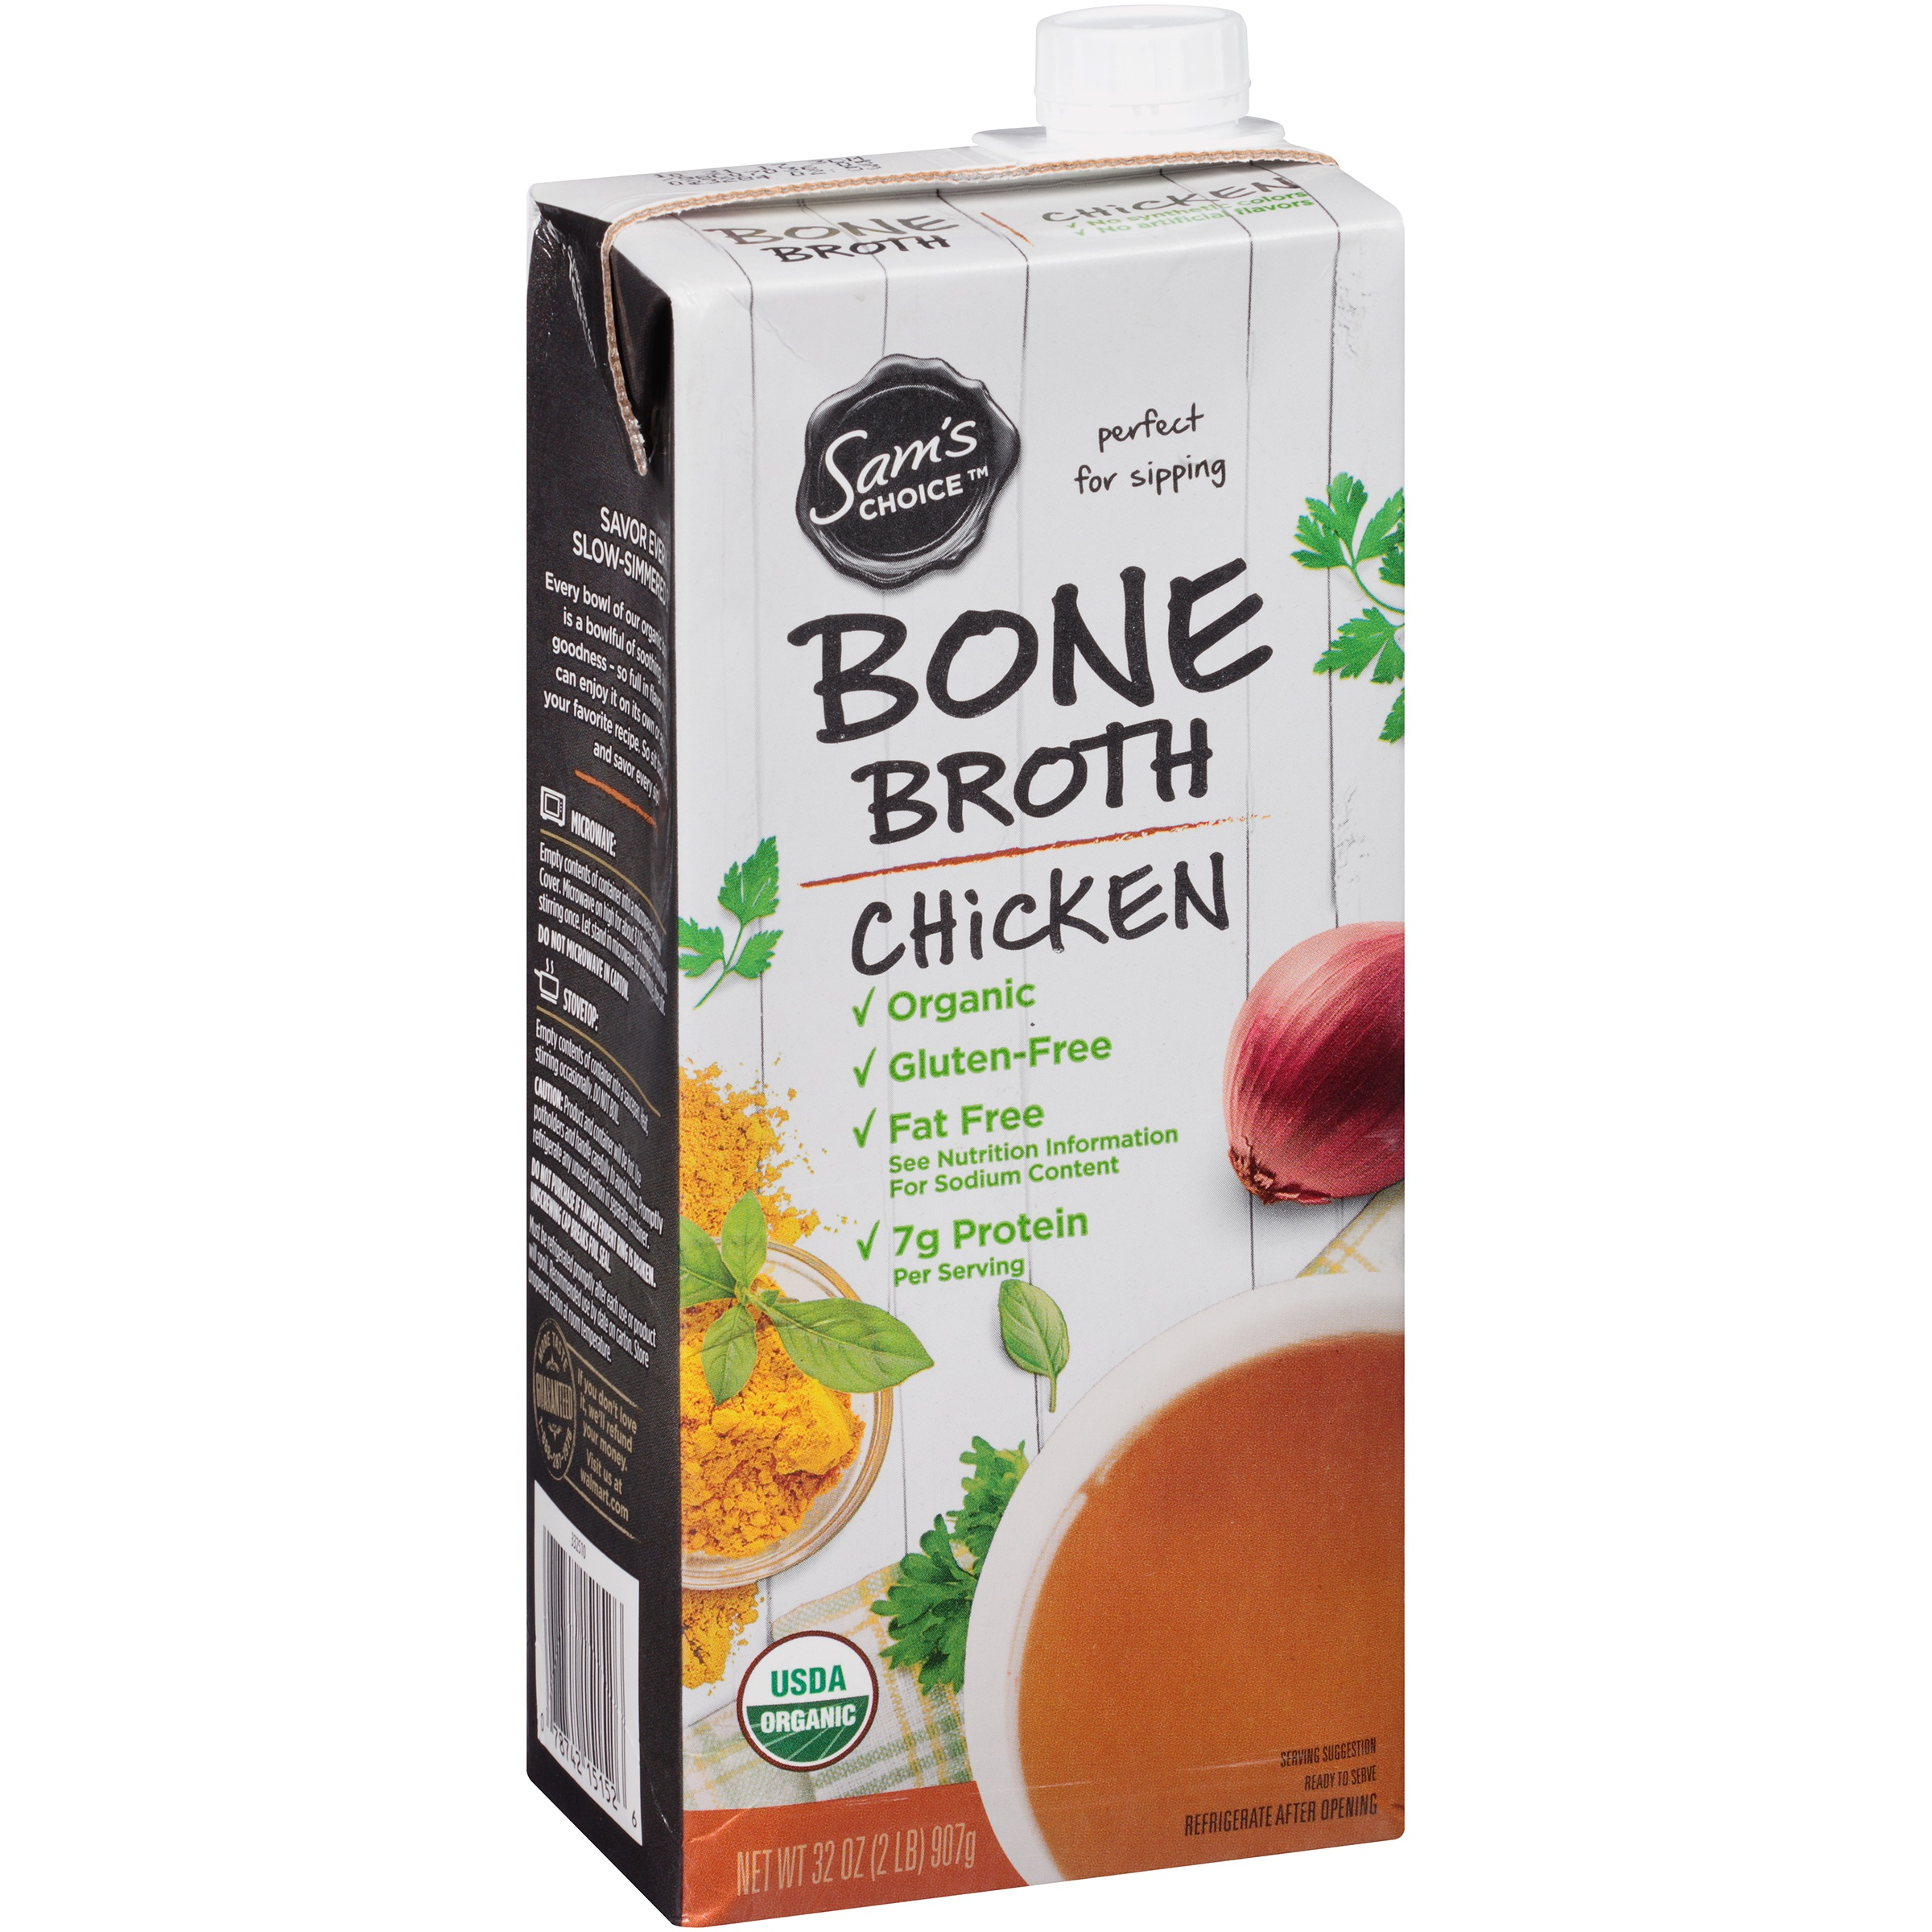 Sam's Choice Organic Chicken Bone Broth, 32 oz